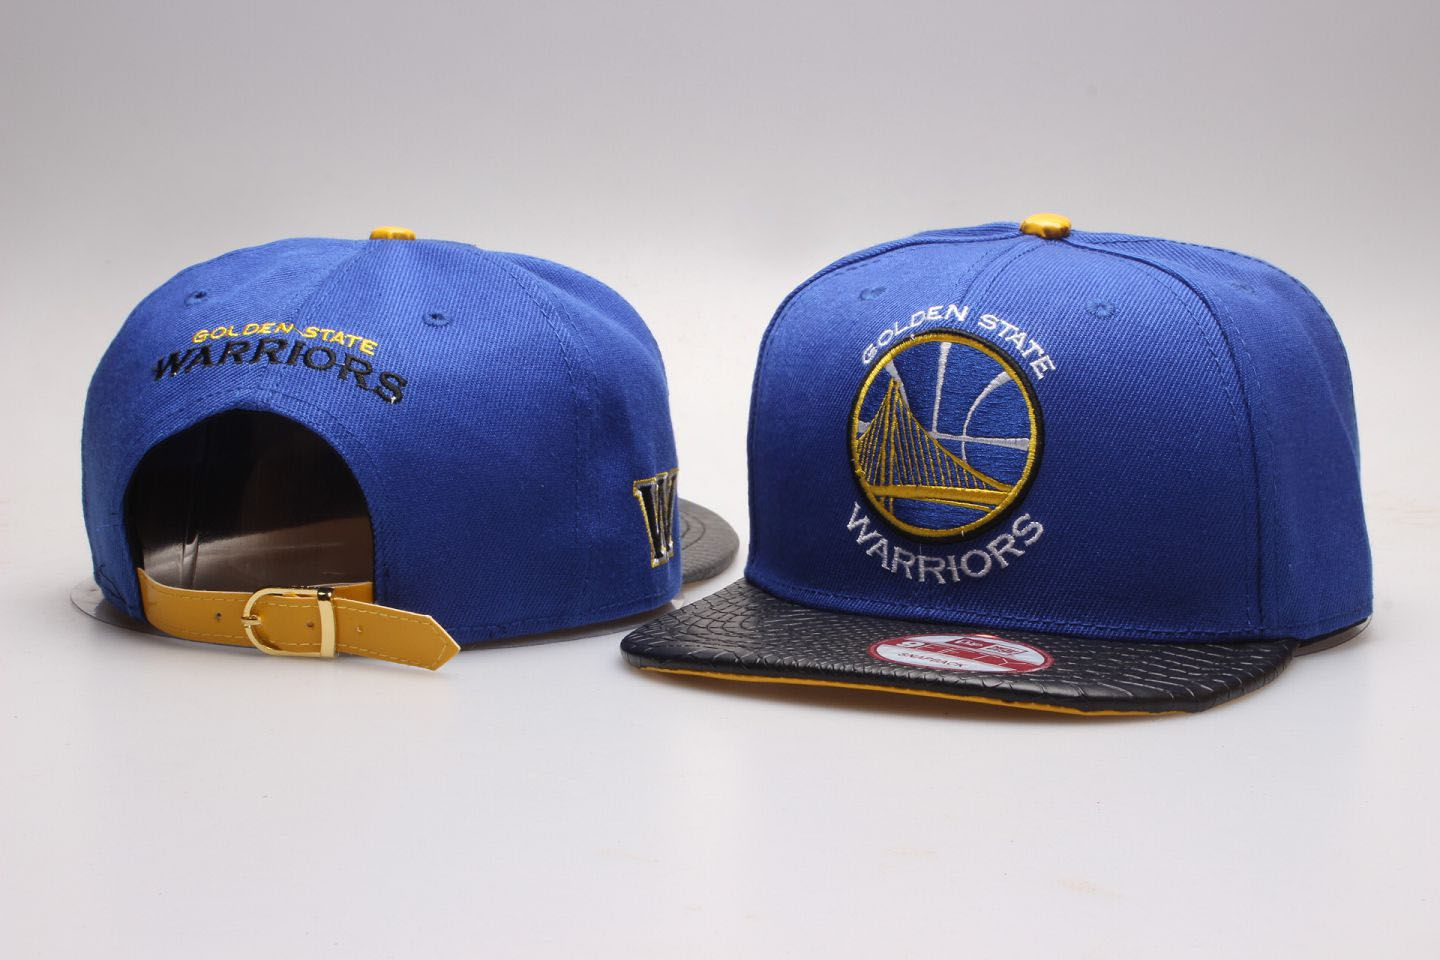 NBA Golden State Warriors Snapback hat 201811253